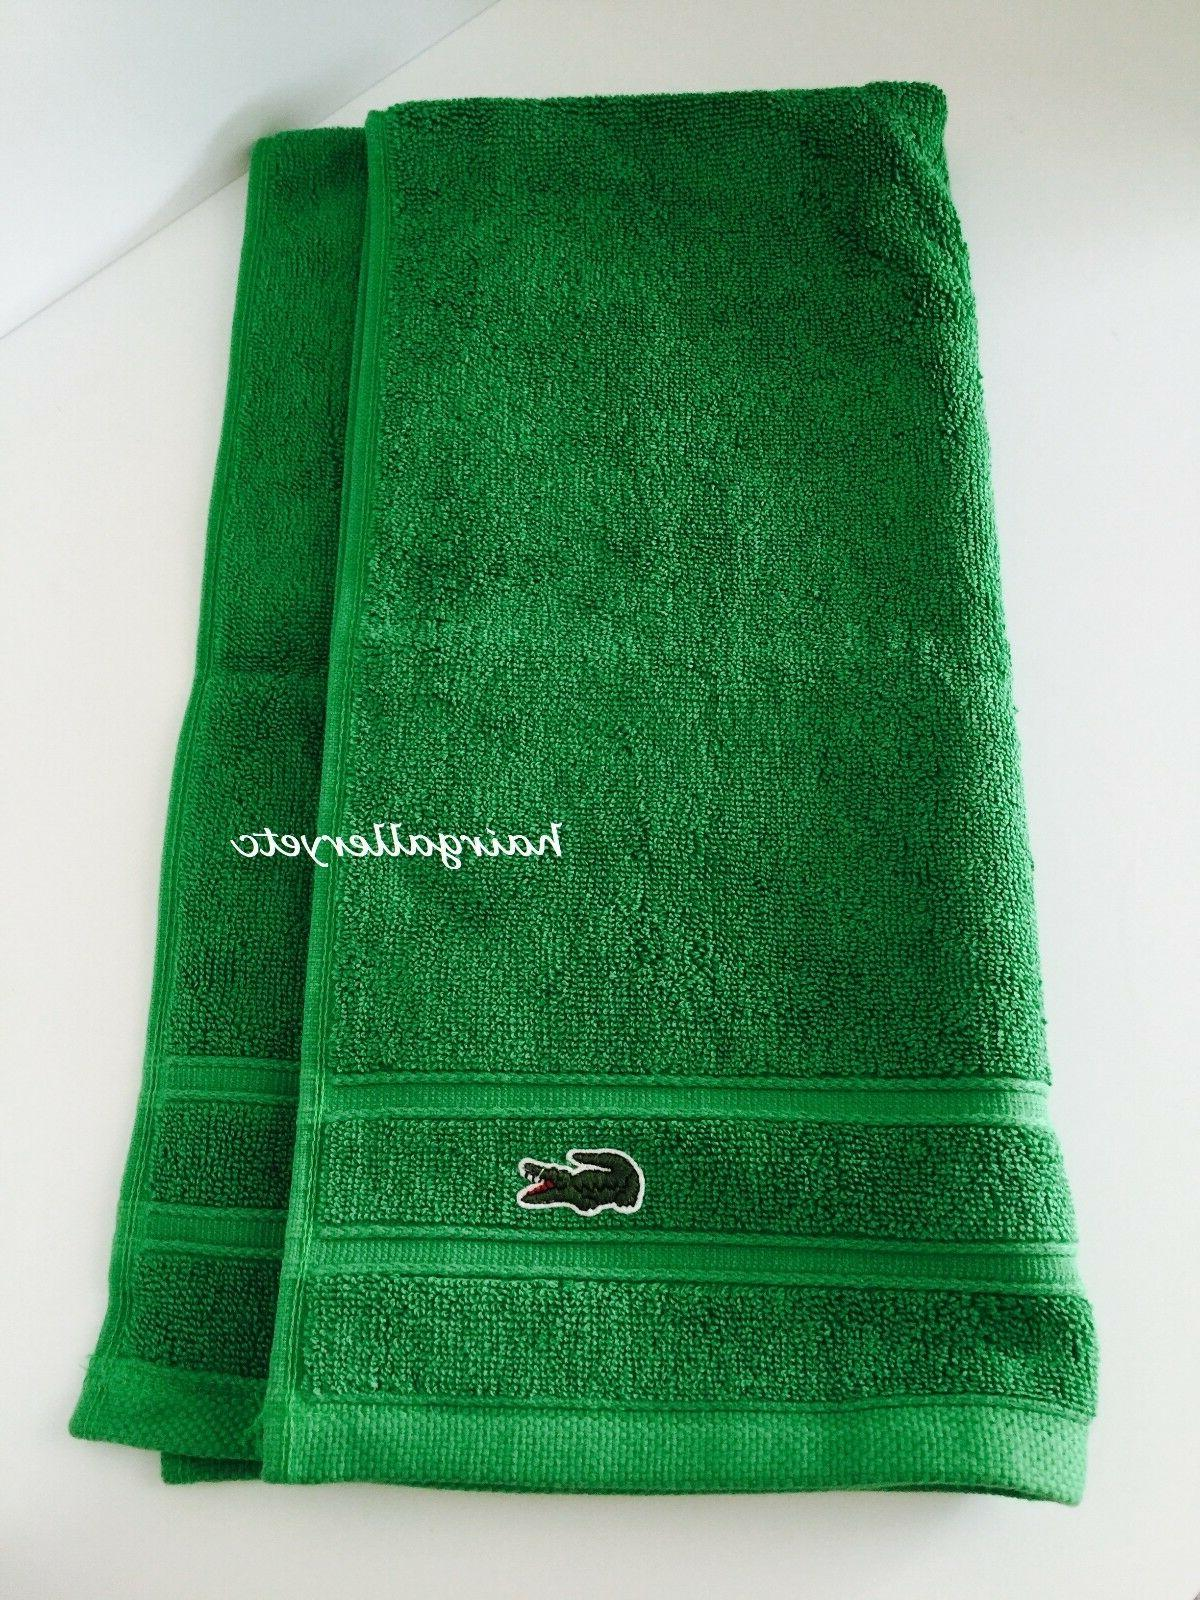 Lacoste Croc Solid x 1 Brand More